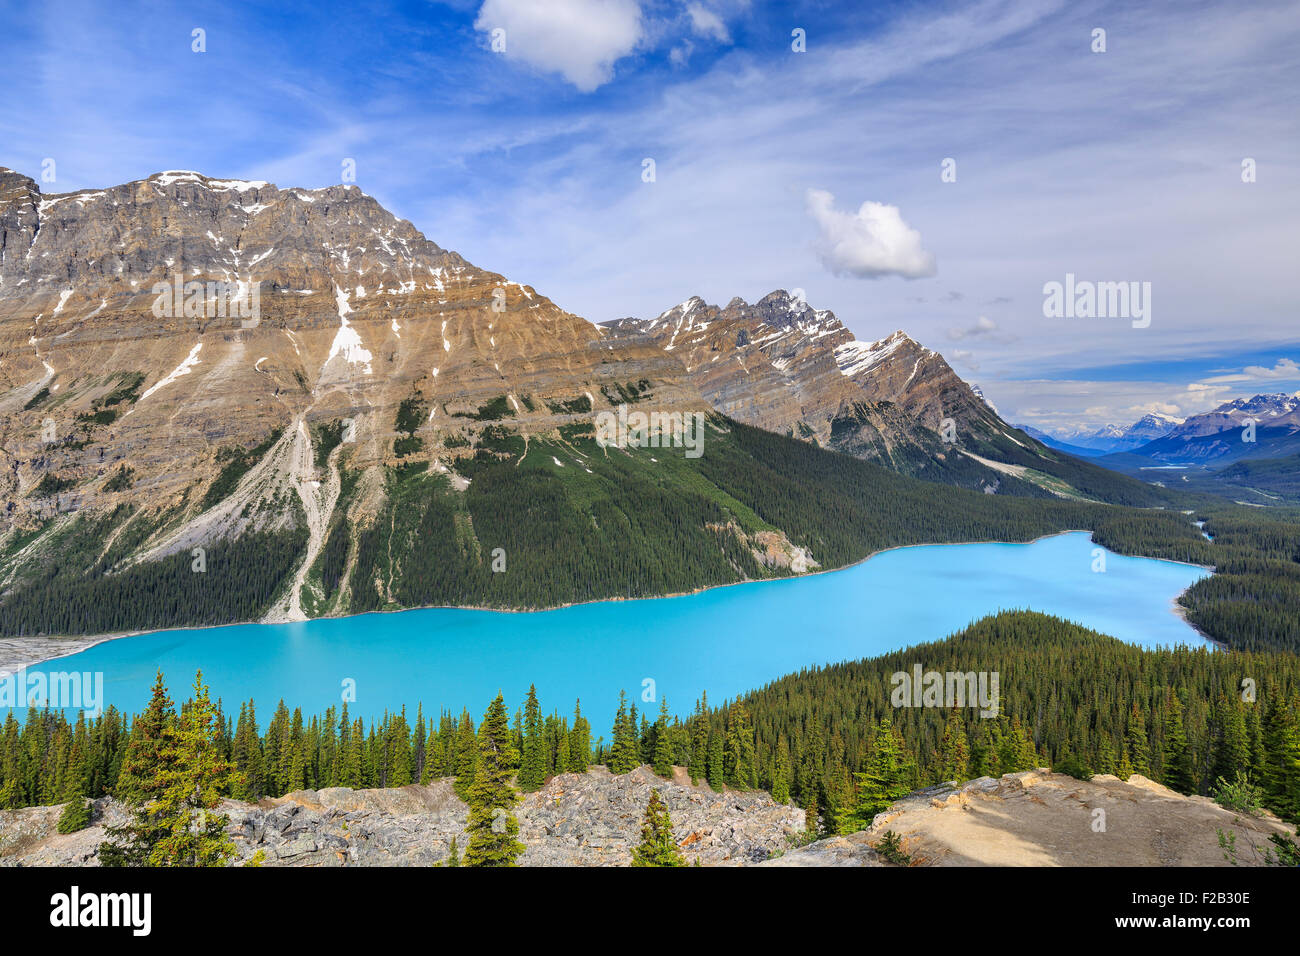 Peyto Lake, Banff National Park, Alberta, Canada. - Stock Image